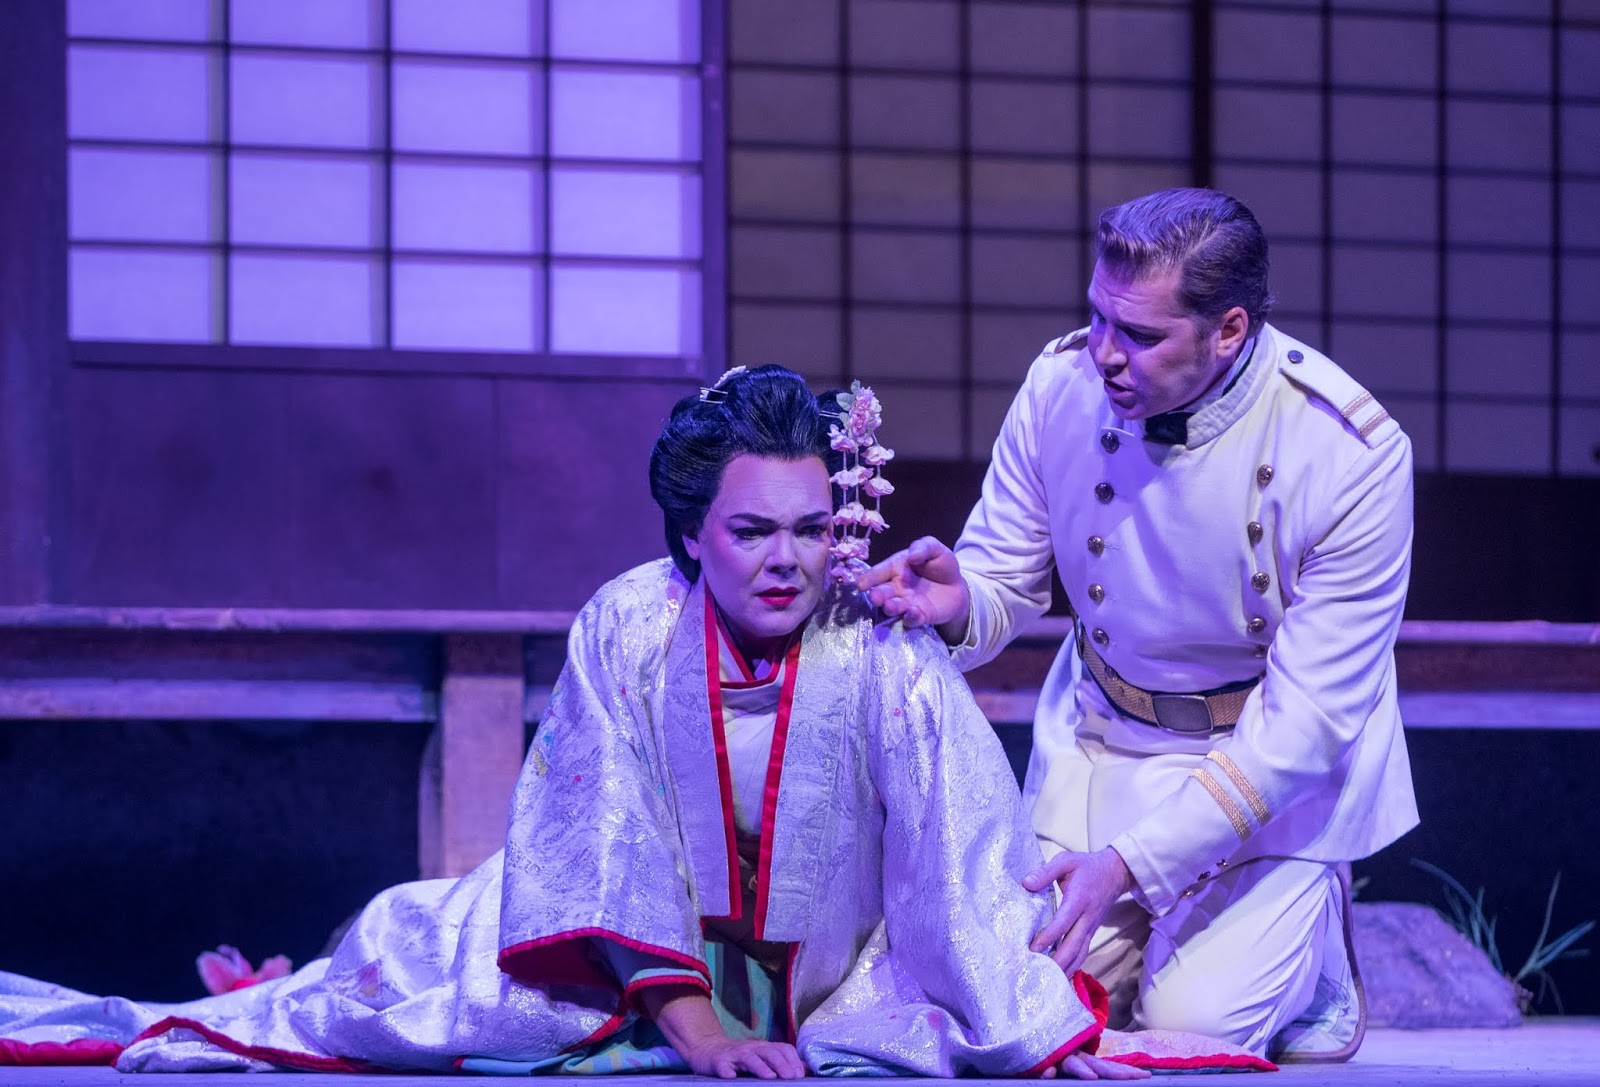 IN PERFORMANCE: soprano JILL GARDNER as Cio-Cio-San (left) and tenor CODY AUSTIN as Pinkerton (right) in Greensboro Opera's production of Giacomo Puccini's MADAMA BUTTERFLY, 9 November 2018 [Photo by Vanderveen Photography, © by Greensboro Opera]